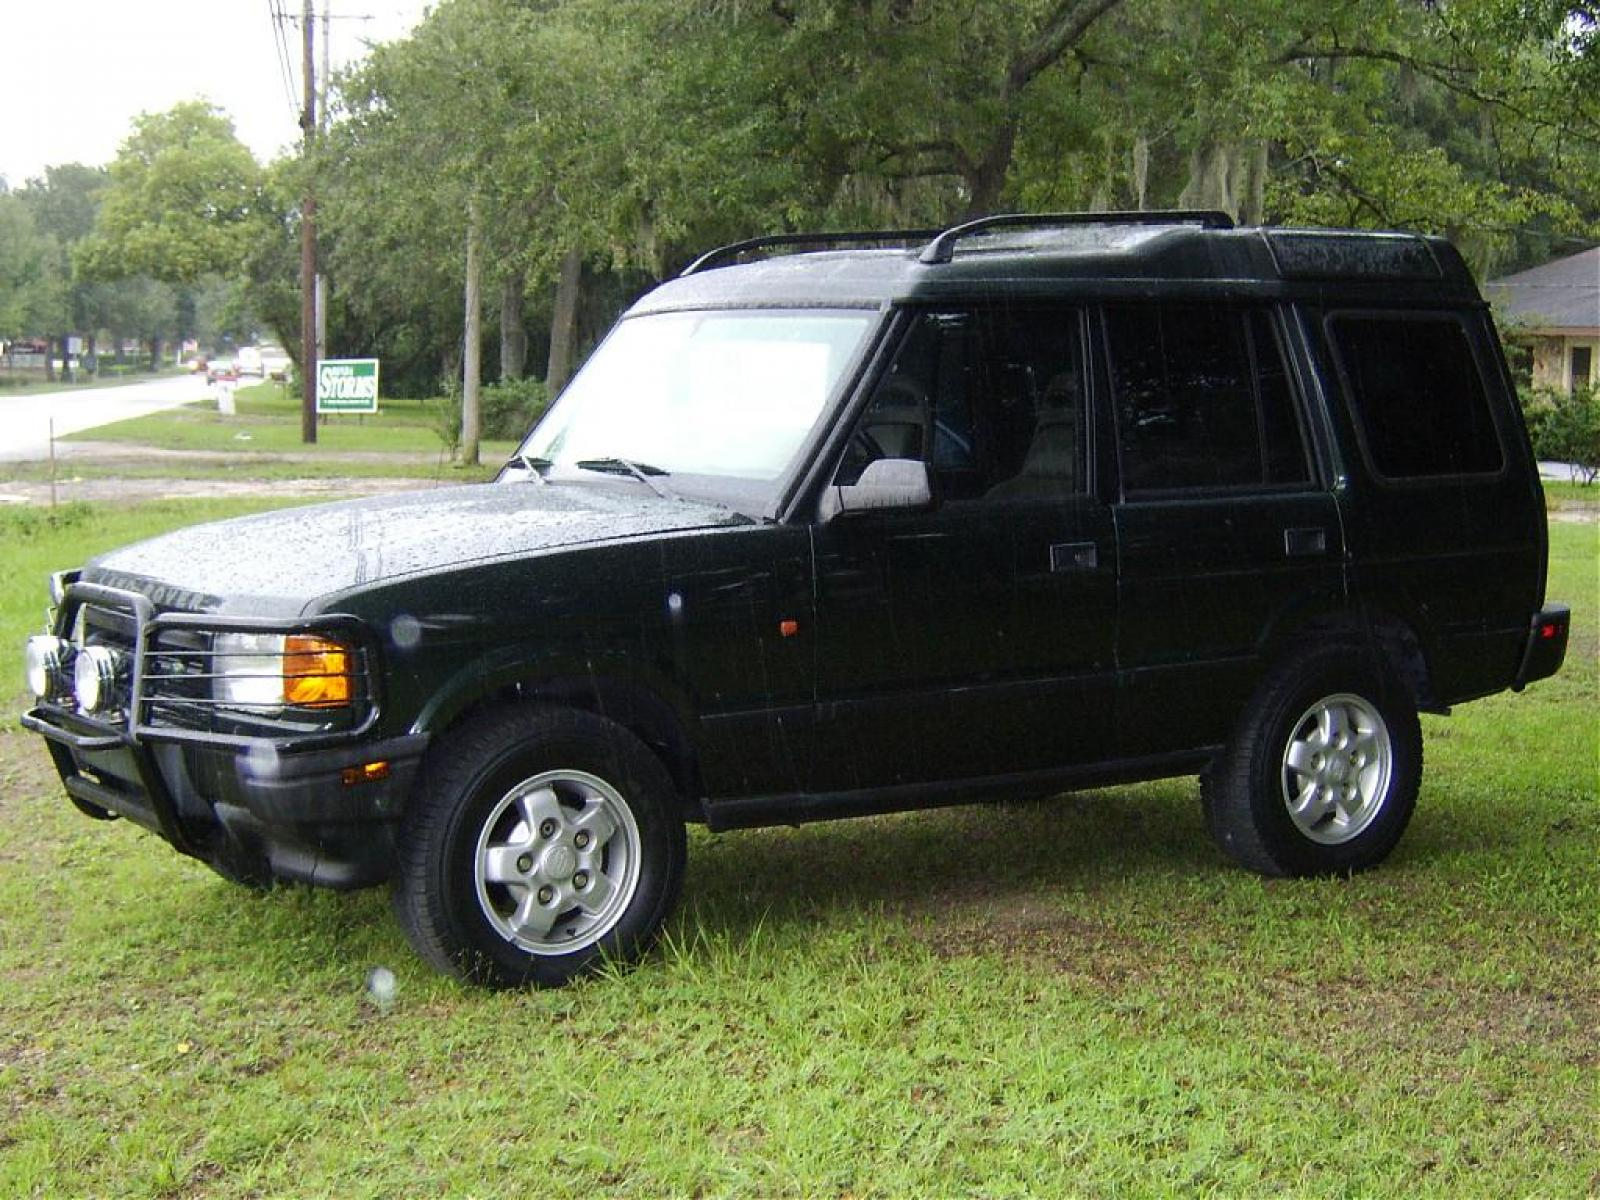 rover copart in or green online on for discovery land en landrover hayward carfinder view acq salvage ca auctions fbce auto of sale cert lot left title